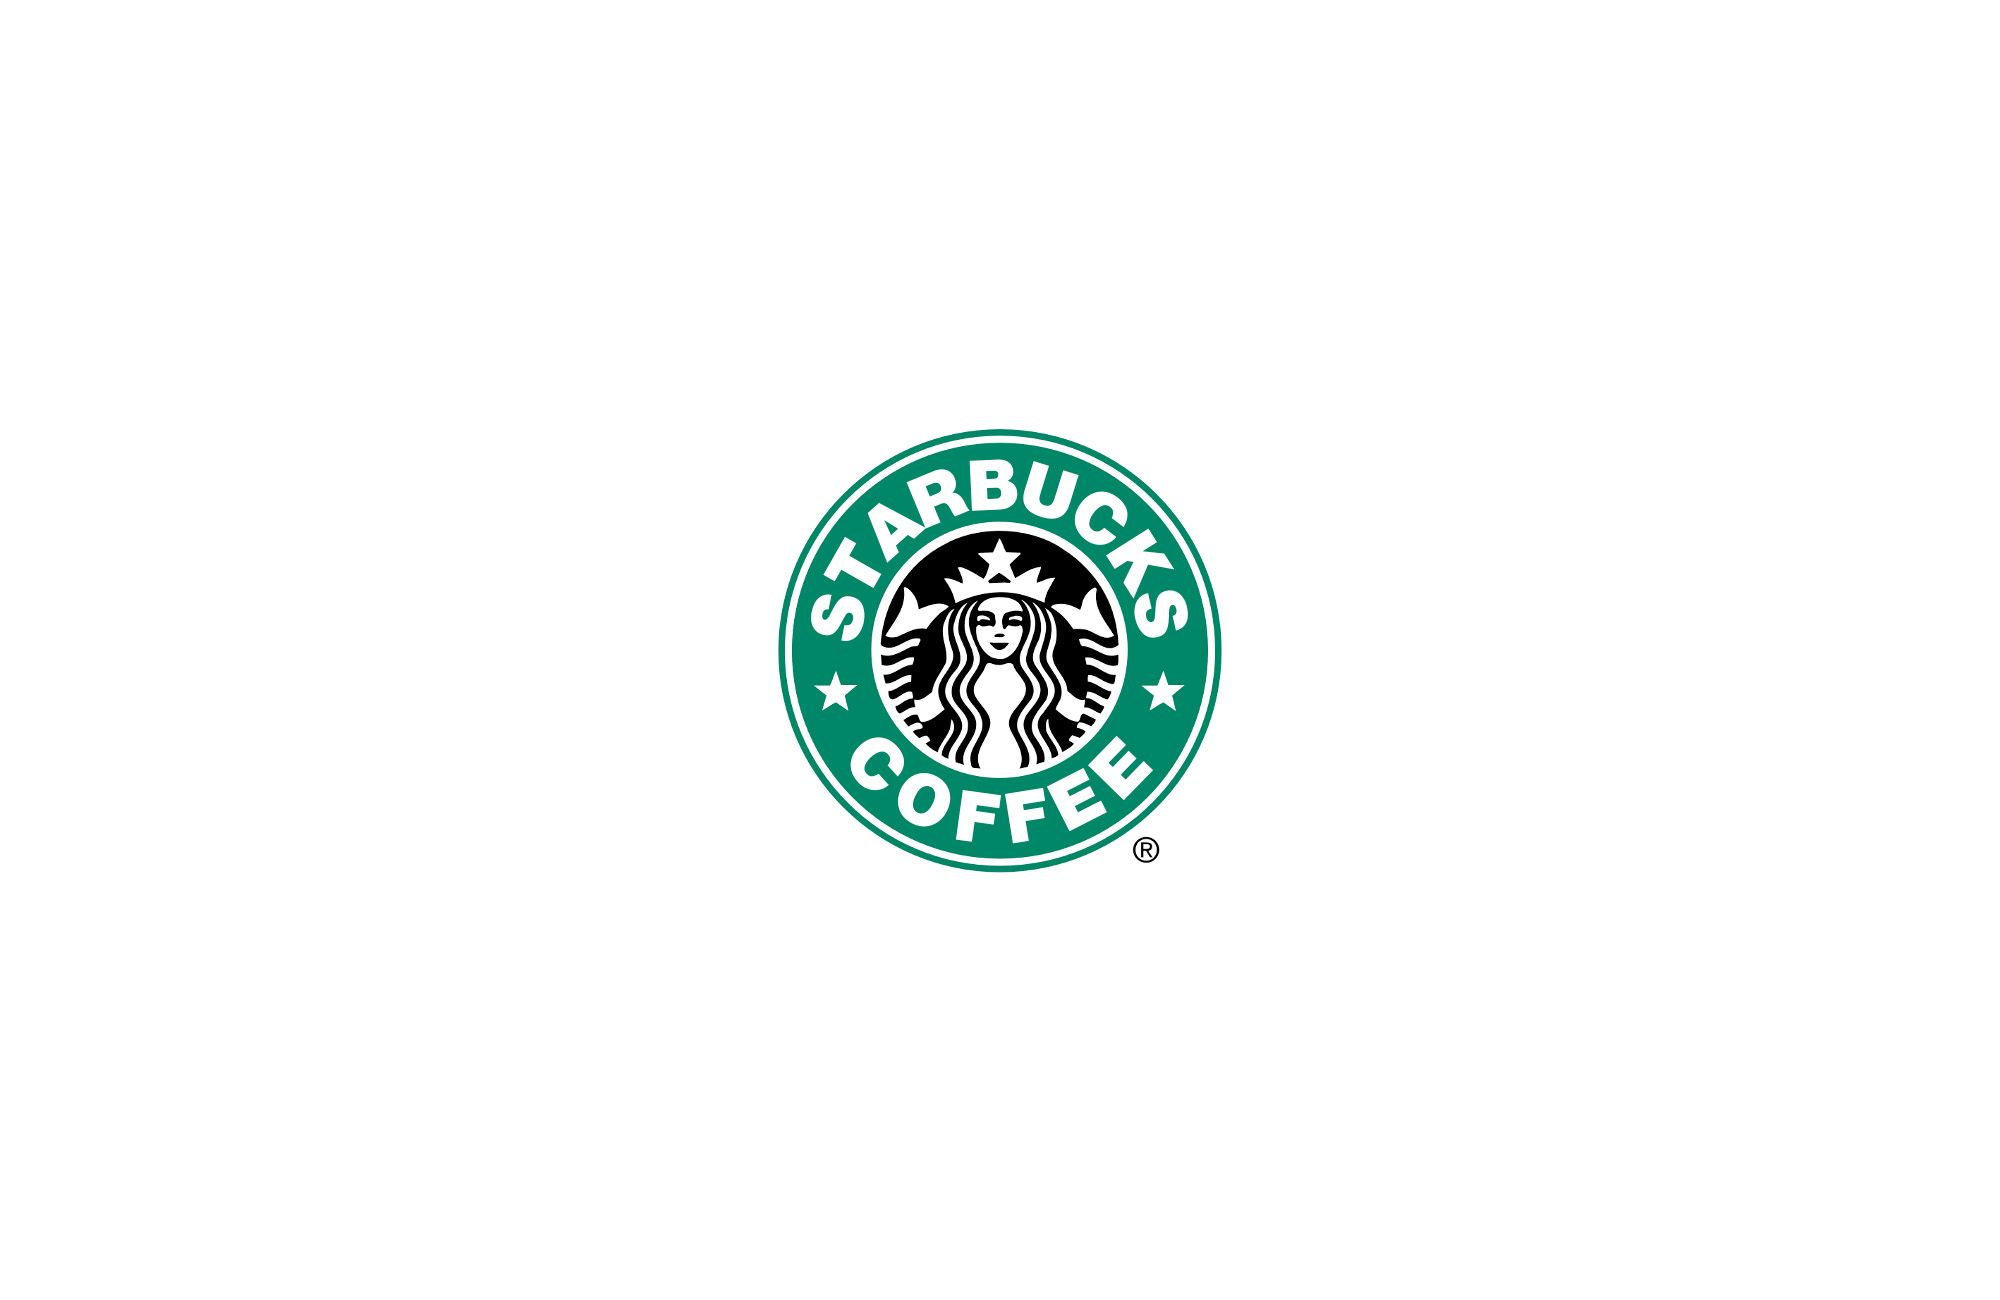 picture about Printable Starbucks Logos titled Mini Printable Starbucks Brand - LogoDix